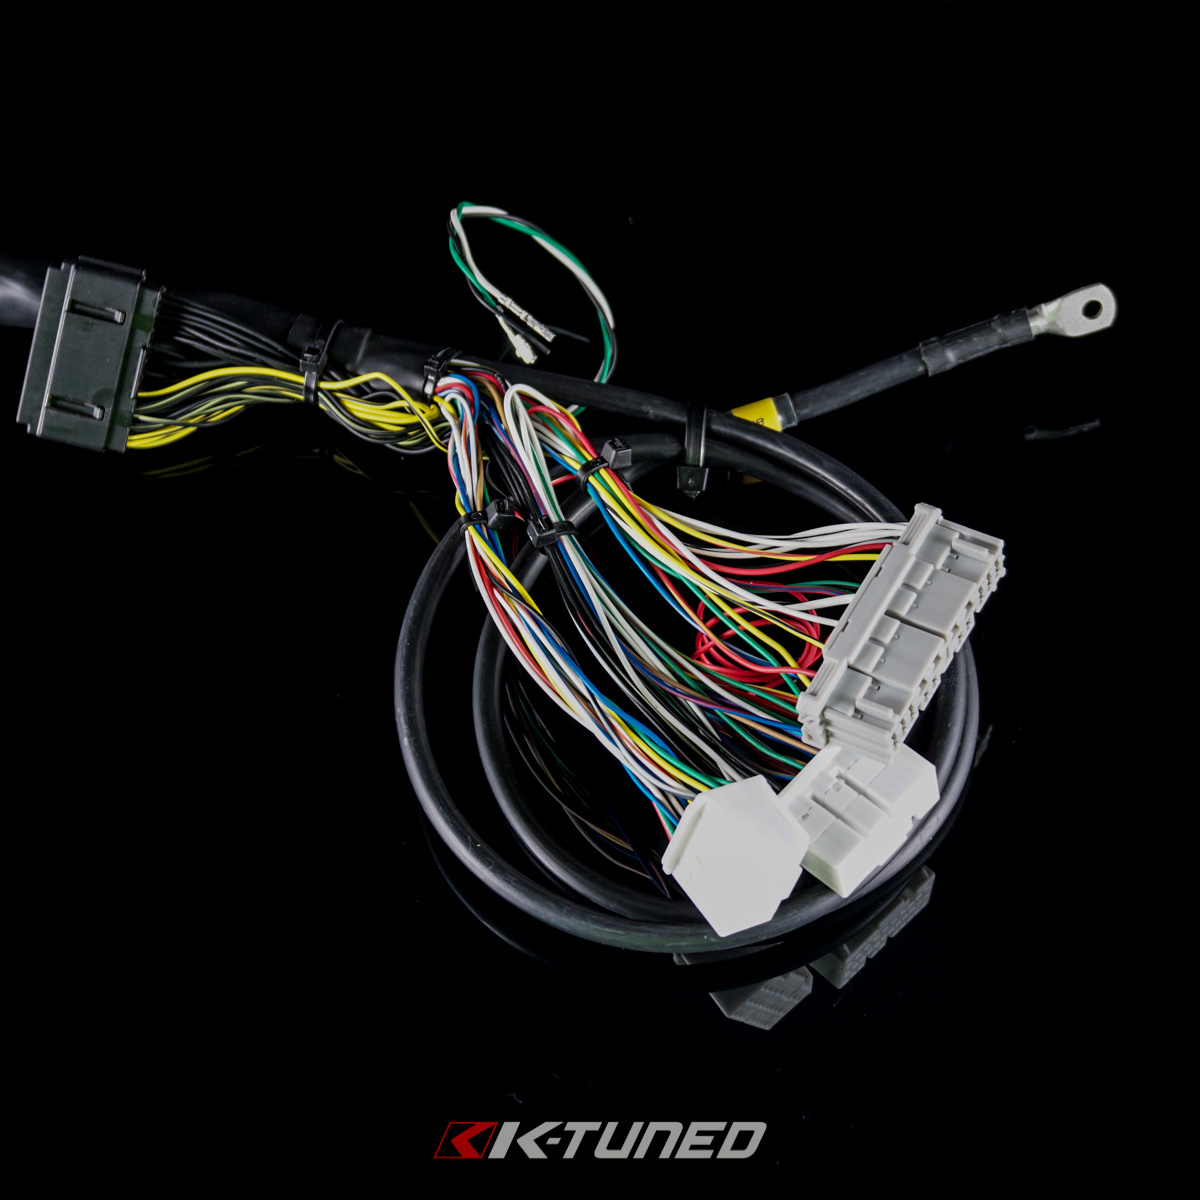 KTH 204 ENG_014 k series tucked engine harness wireworx k series harness at suagrazia.org